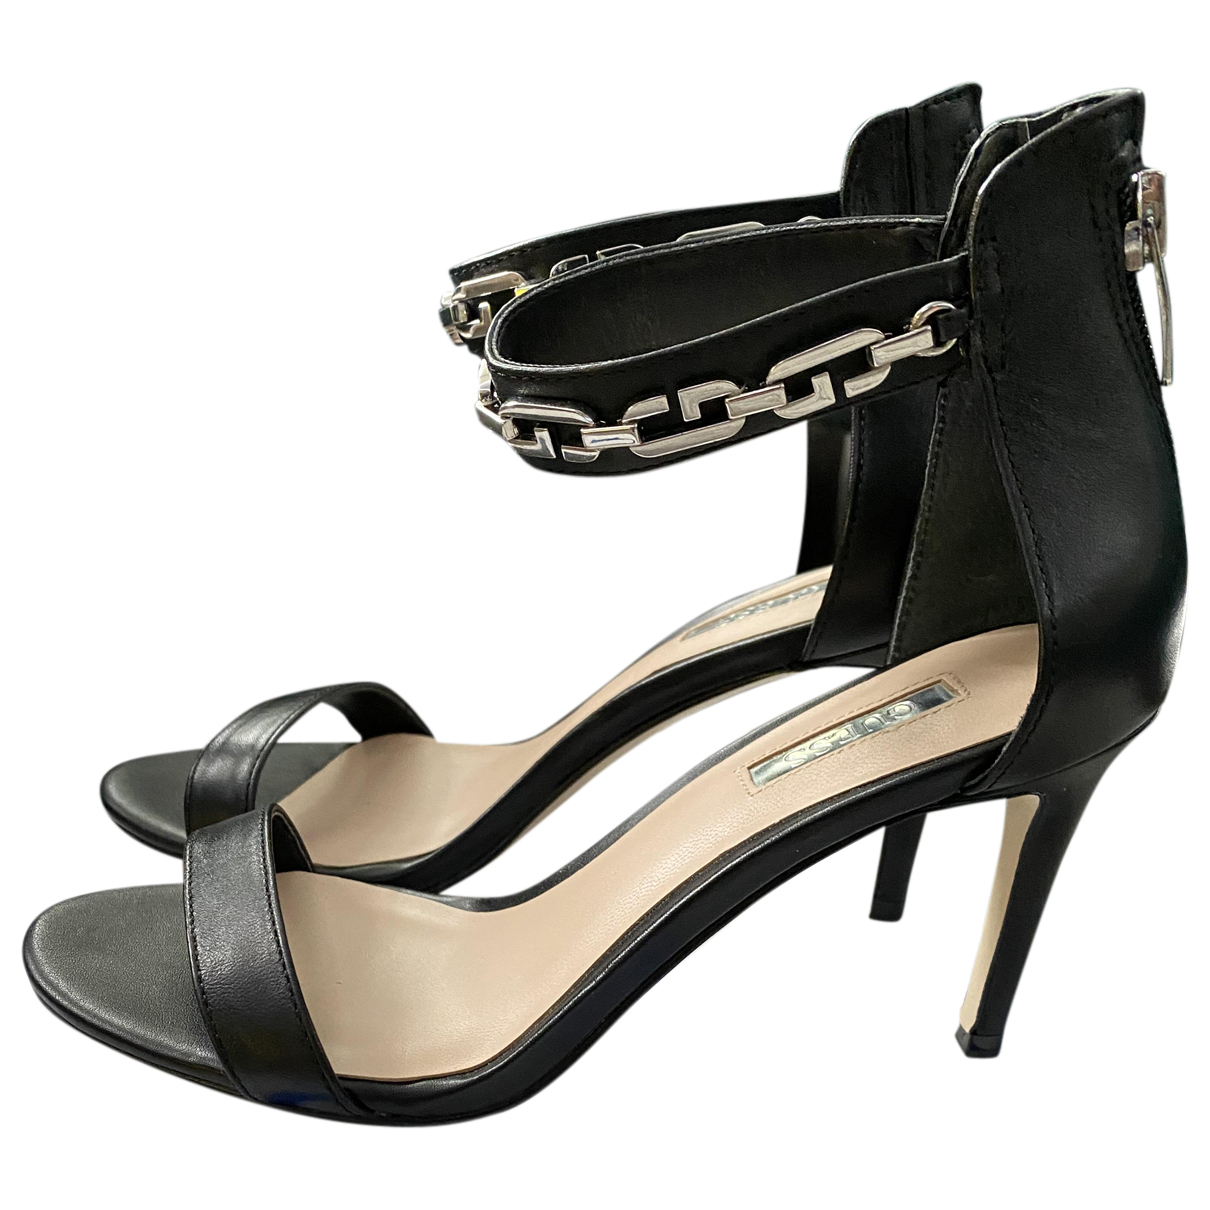 Guess N Black Leather Sandals for Women 36 EU